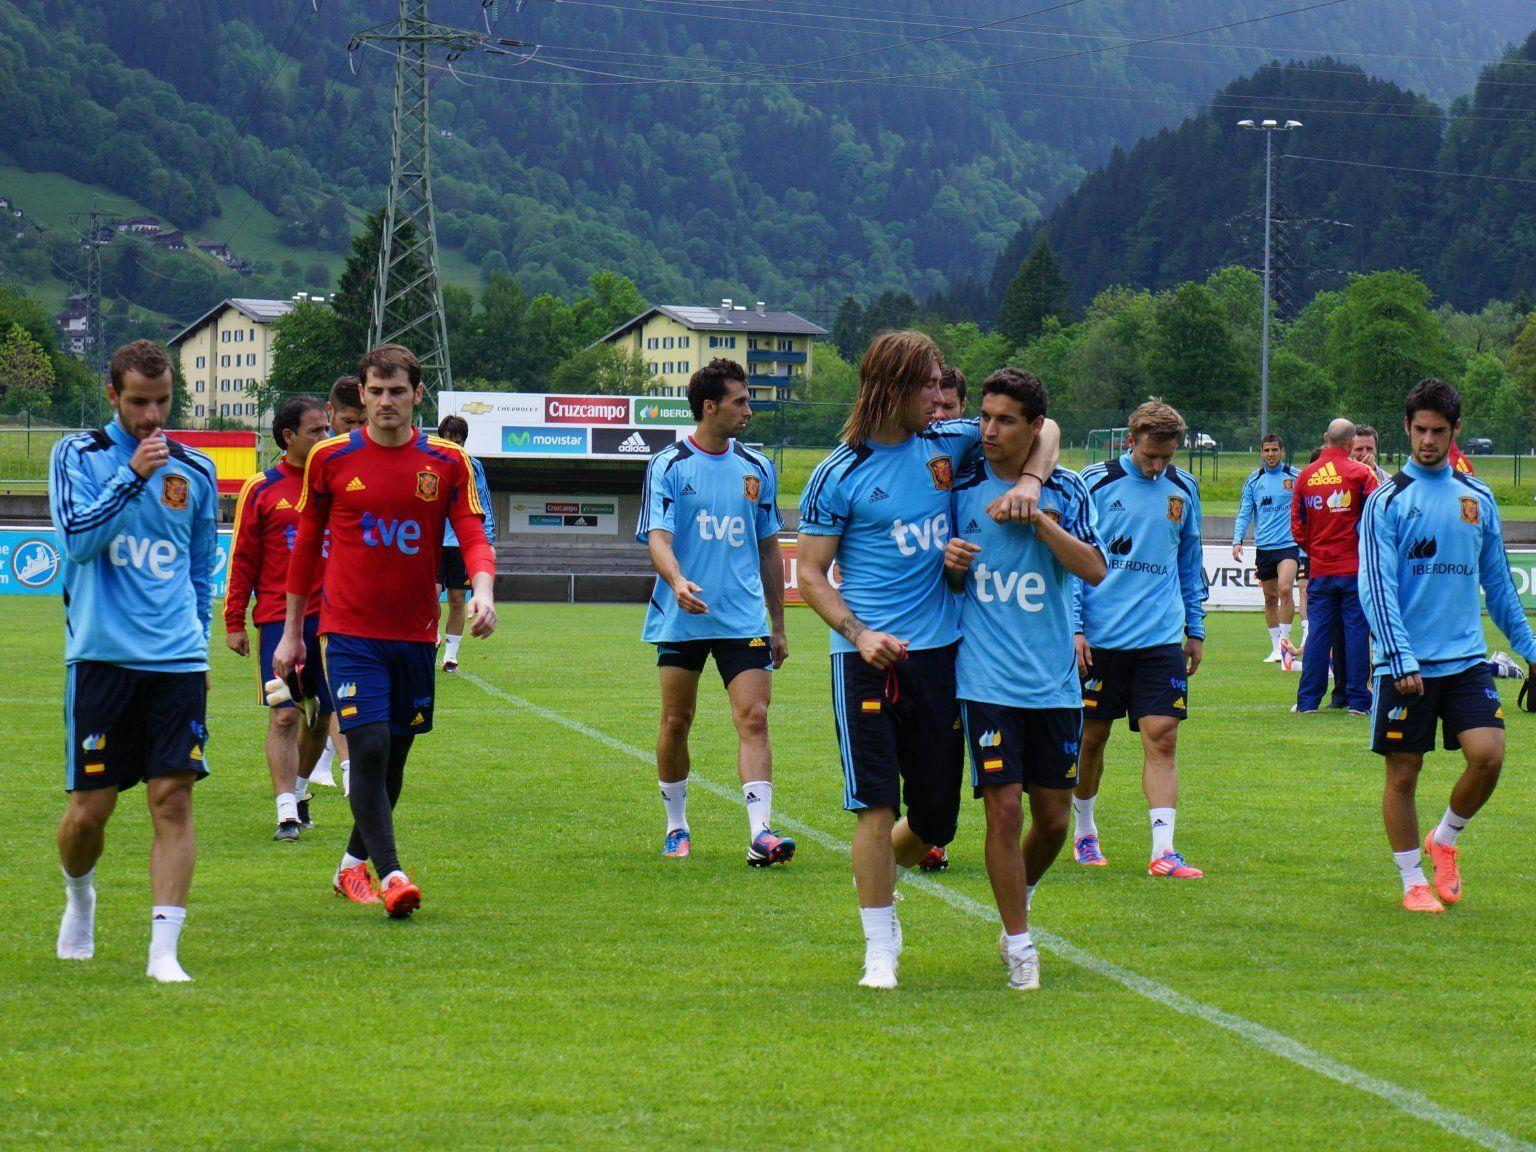 Spaniens Nationalteam nach dem ersten Training in Schruns.